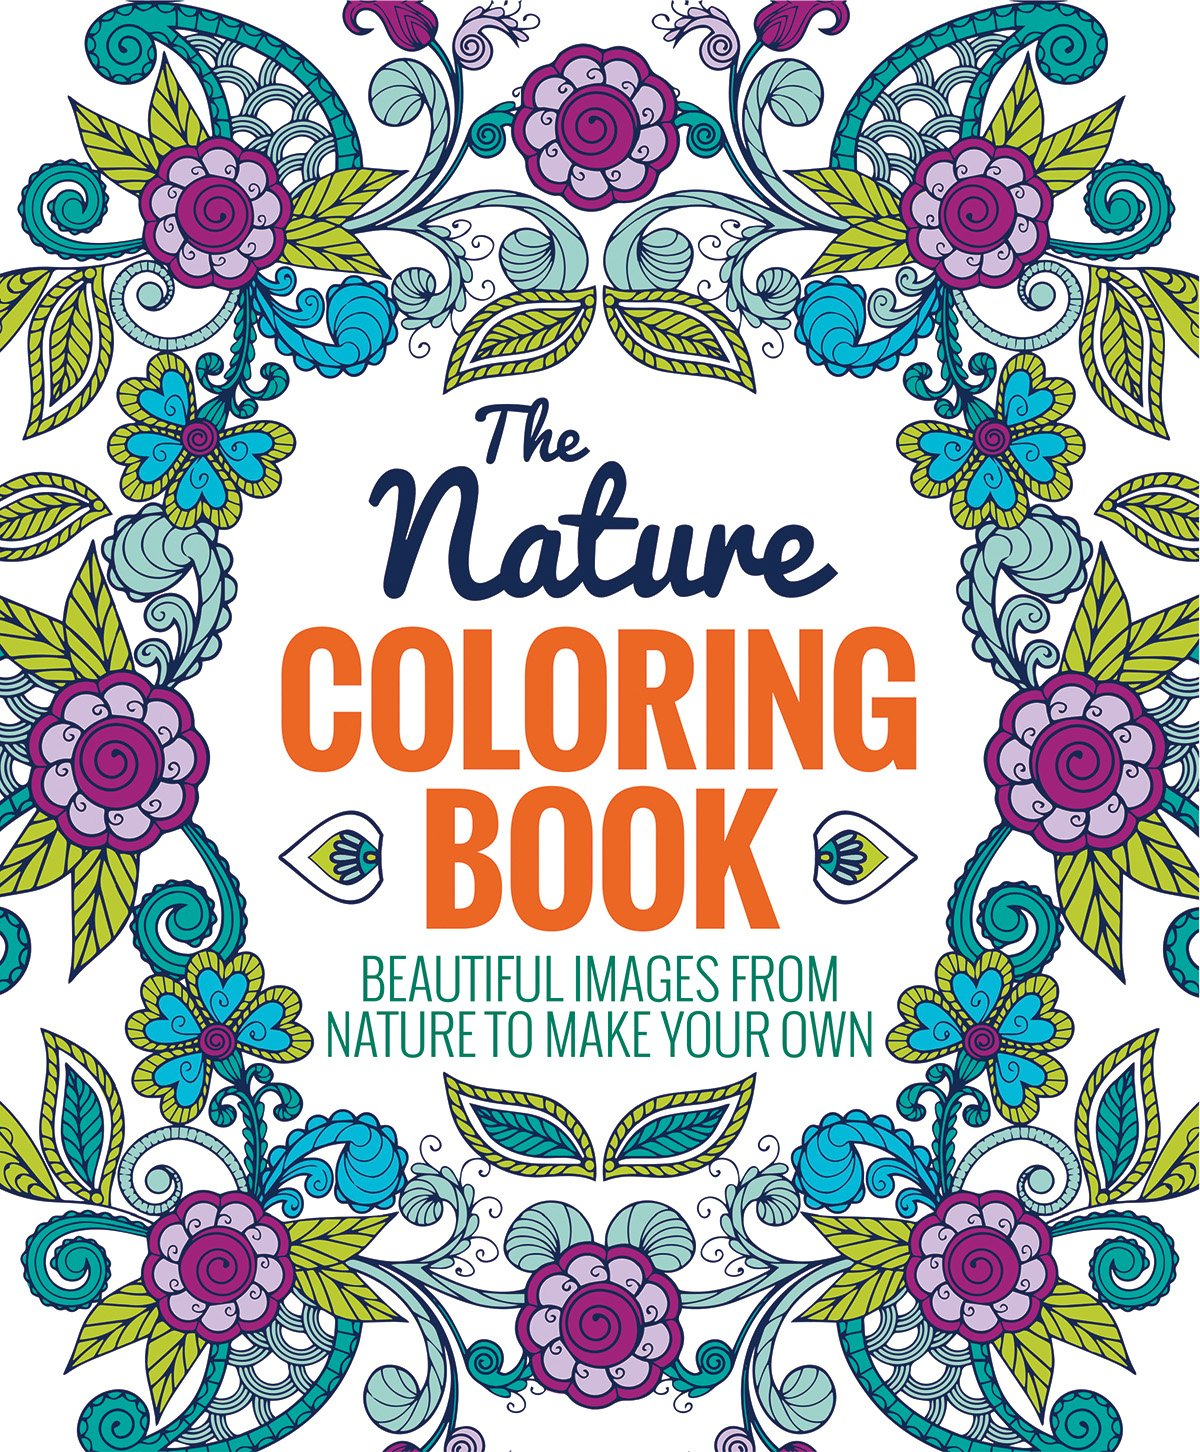 amazoncom the nature coloring book 9781626864733 editors of thunder bay press books - Nature Coloring Book